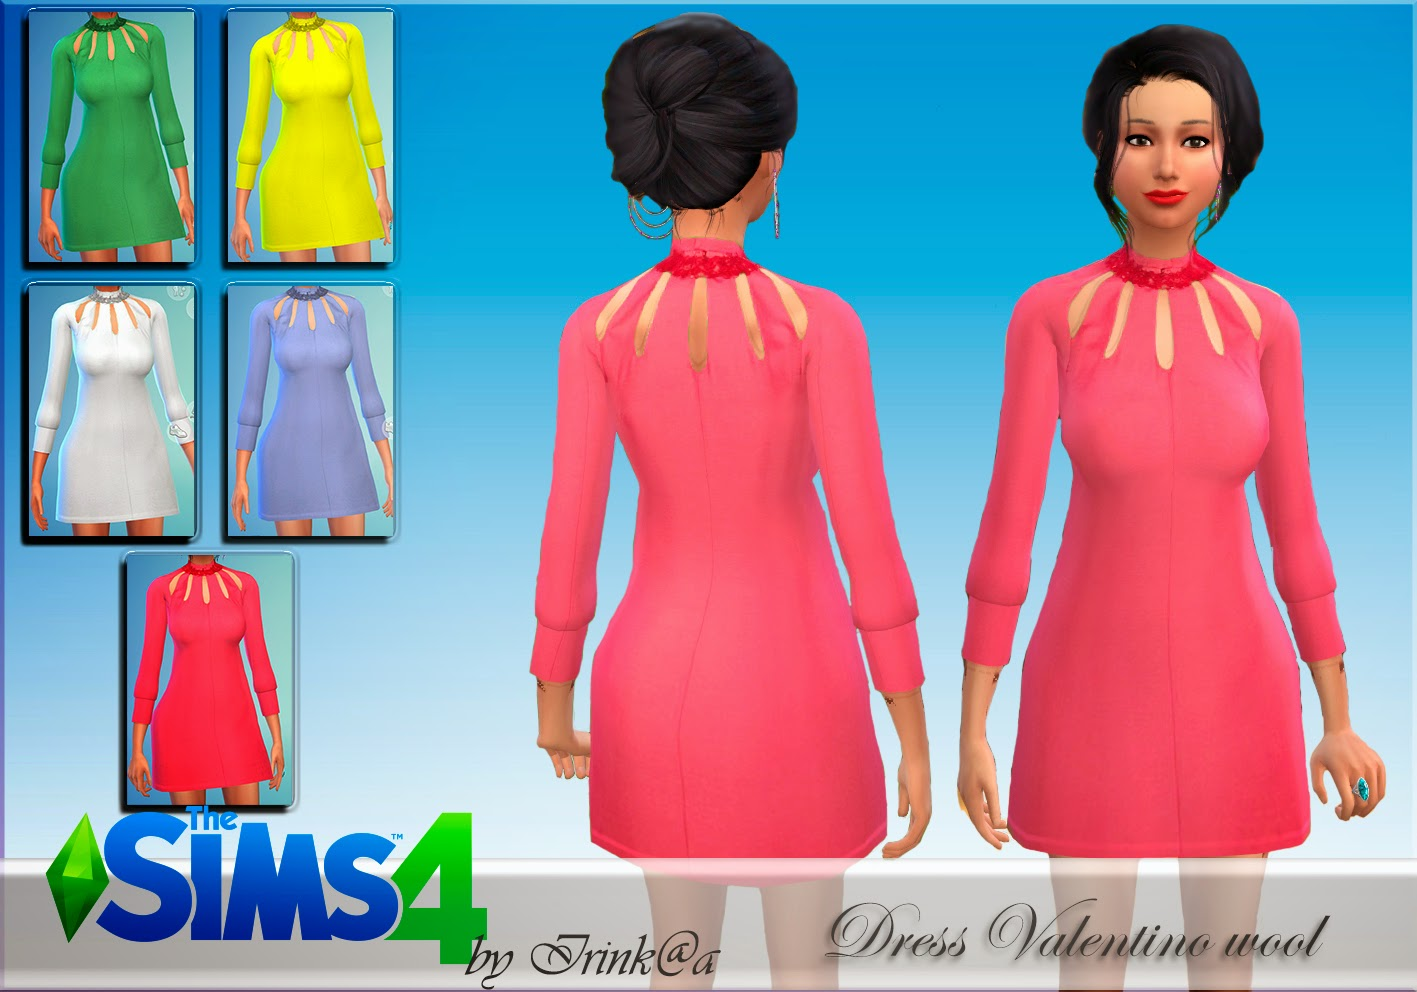 Dress Valentino wool by Irink@a